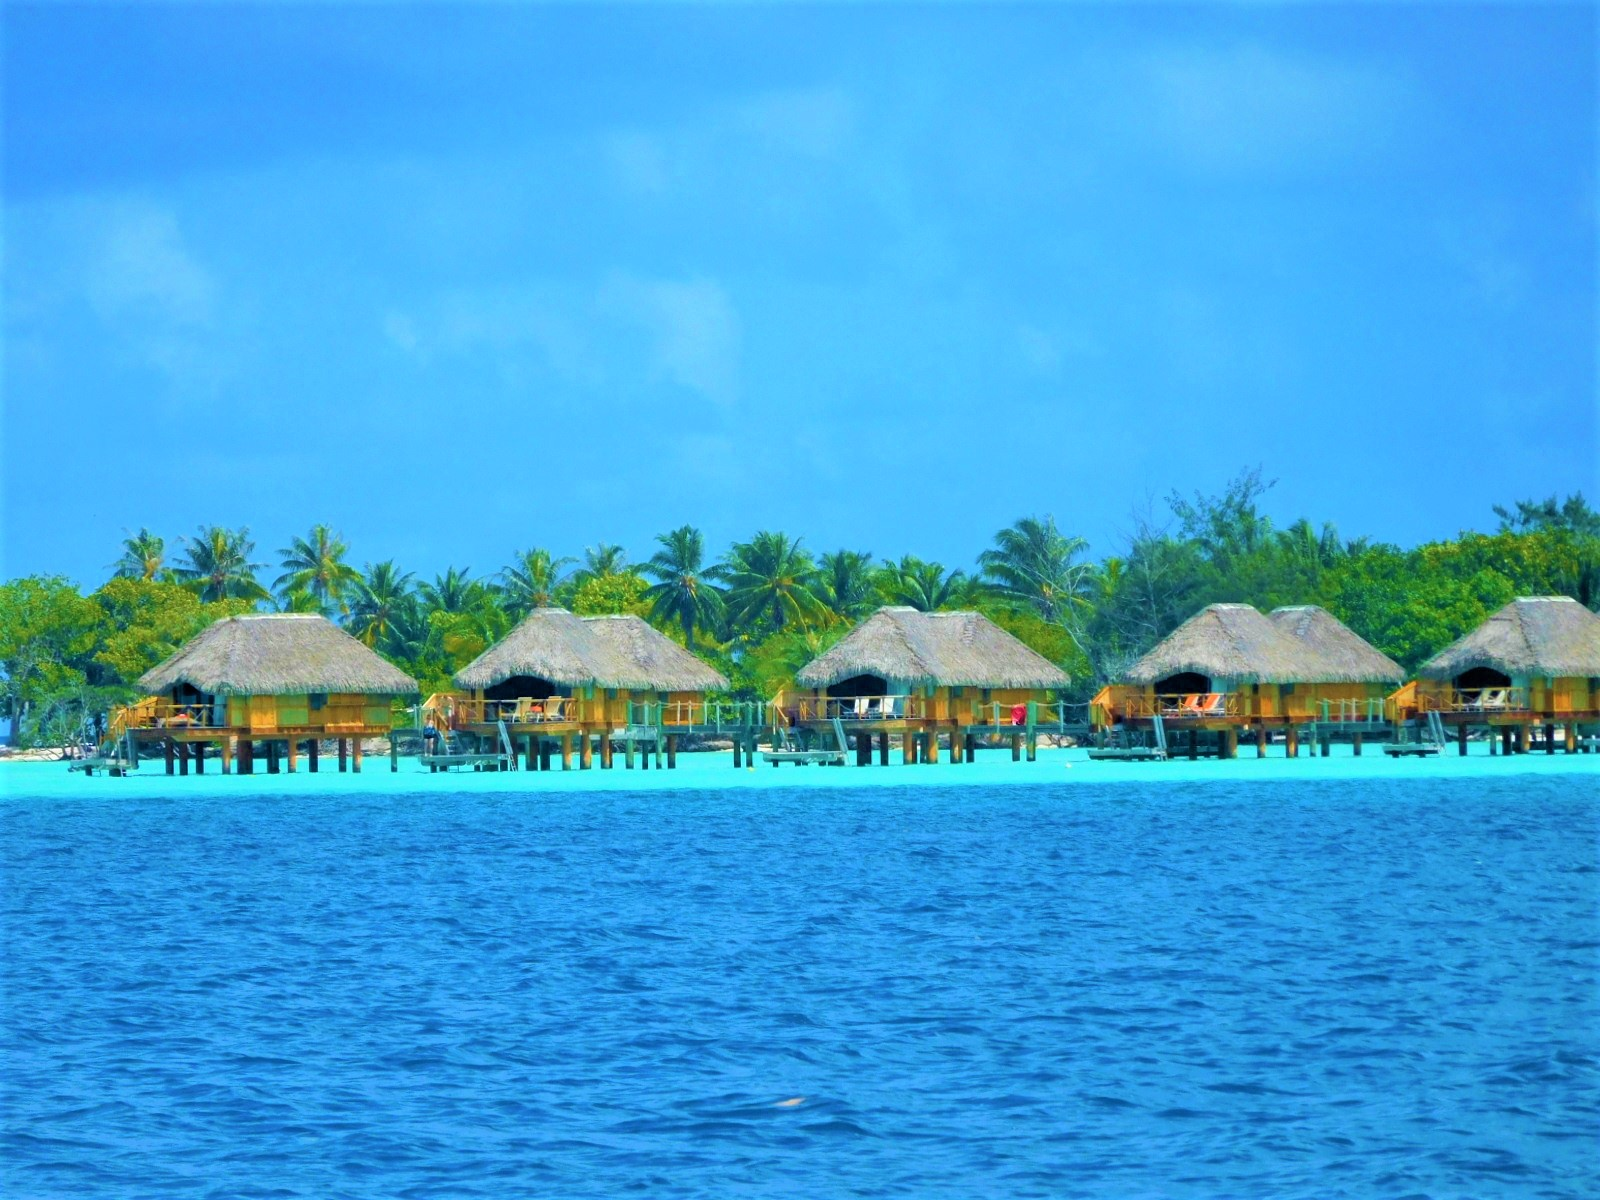 10 Interesting facts you didn't know about Tahiti, Moorea ...